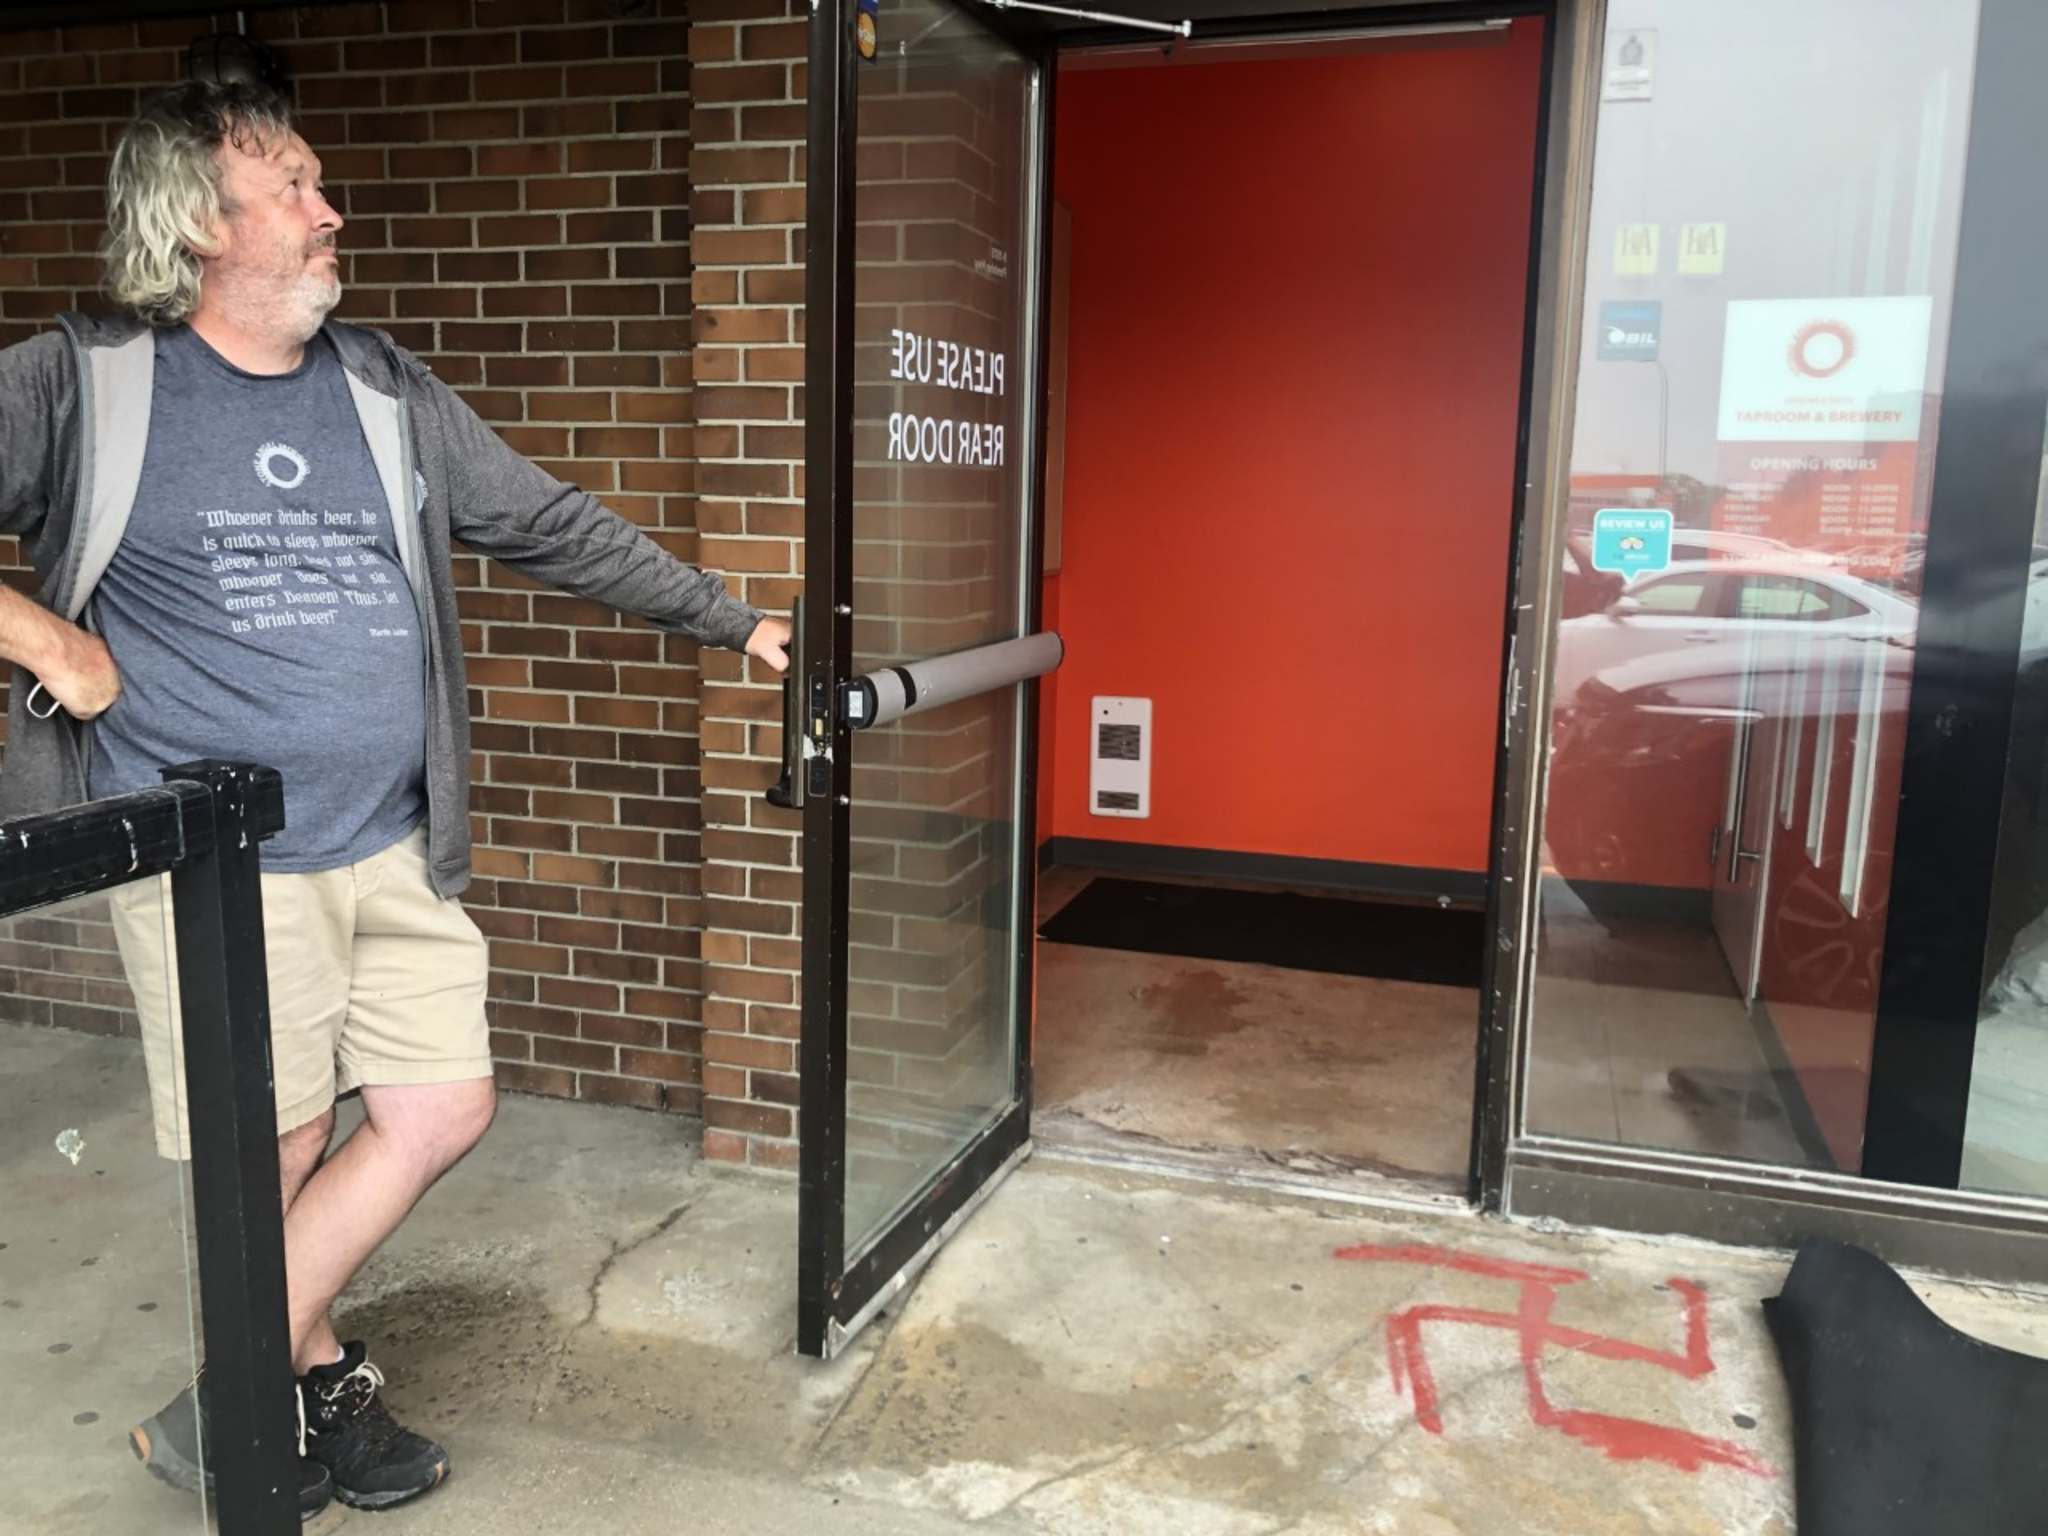 Stone Angel Brewing co-owner Paul Clerkin surveys the damage after his business and others were vandalized with hateful graffiti overnight. (Erik Pindera / Winnipeg Free Press)